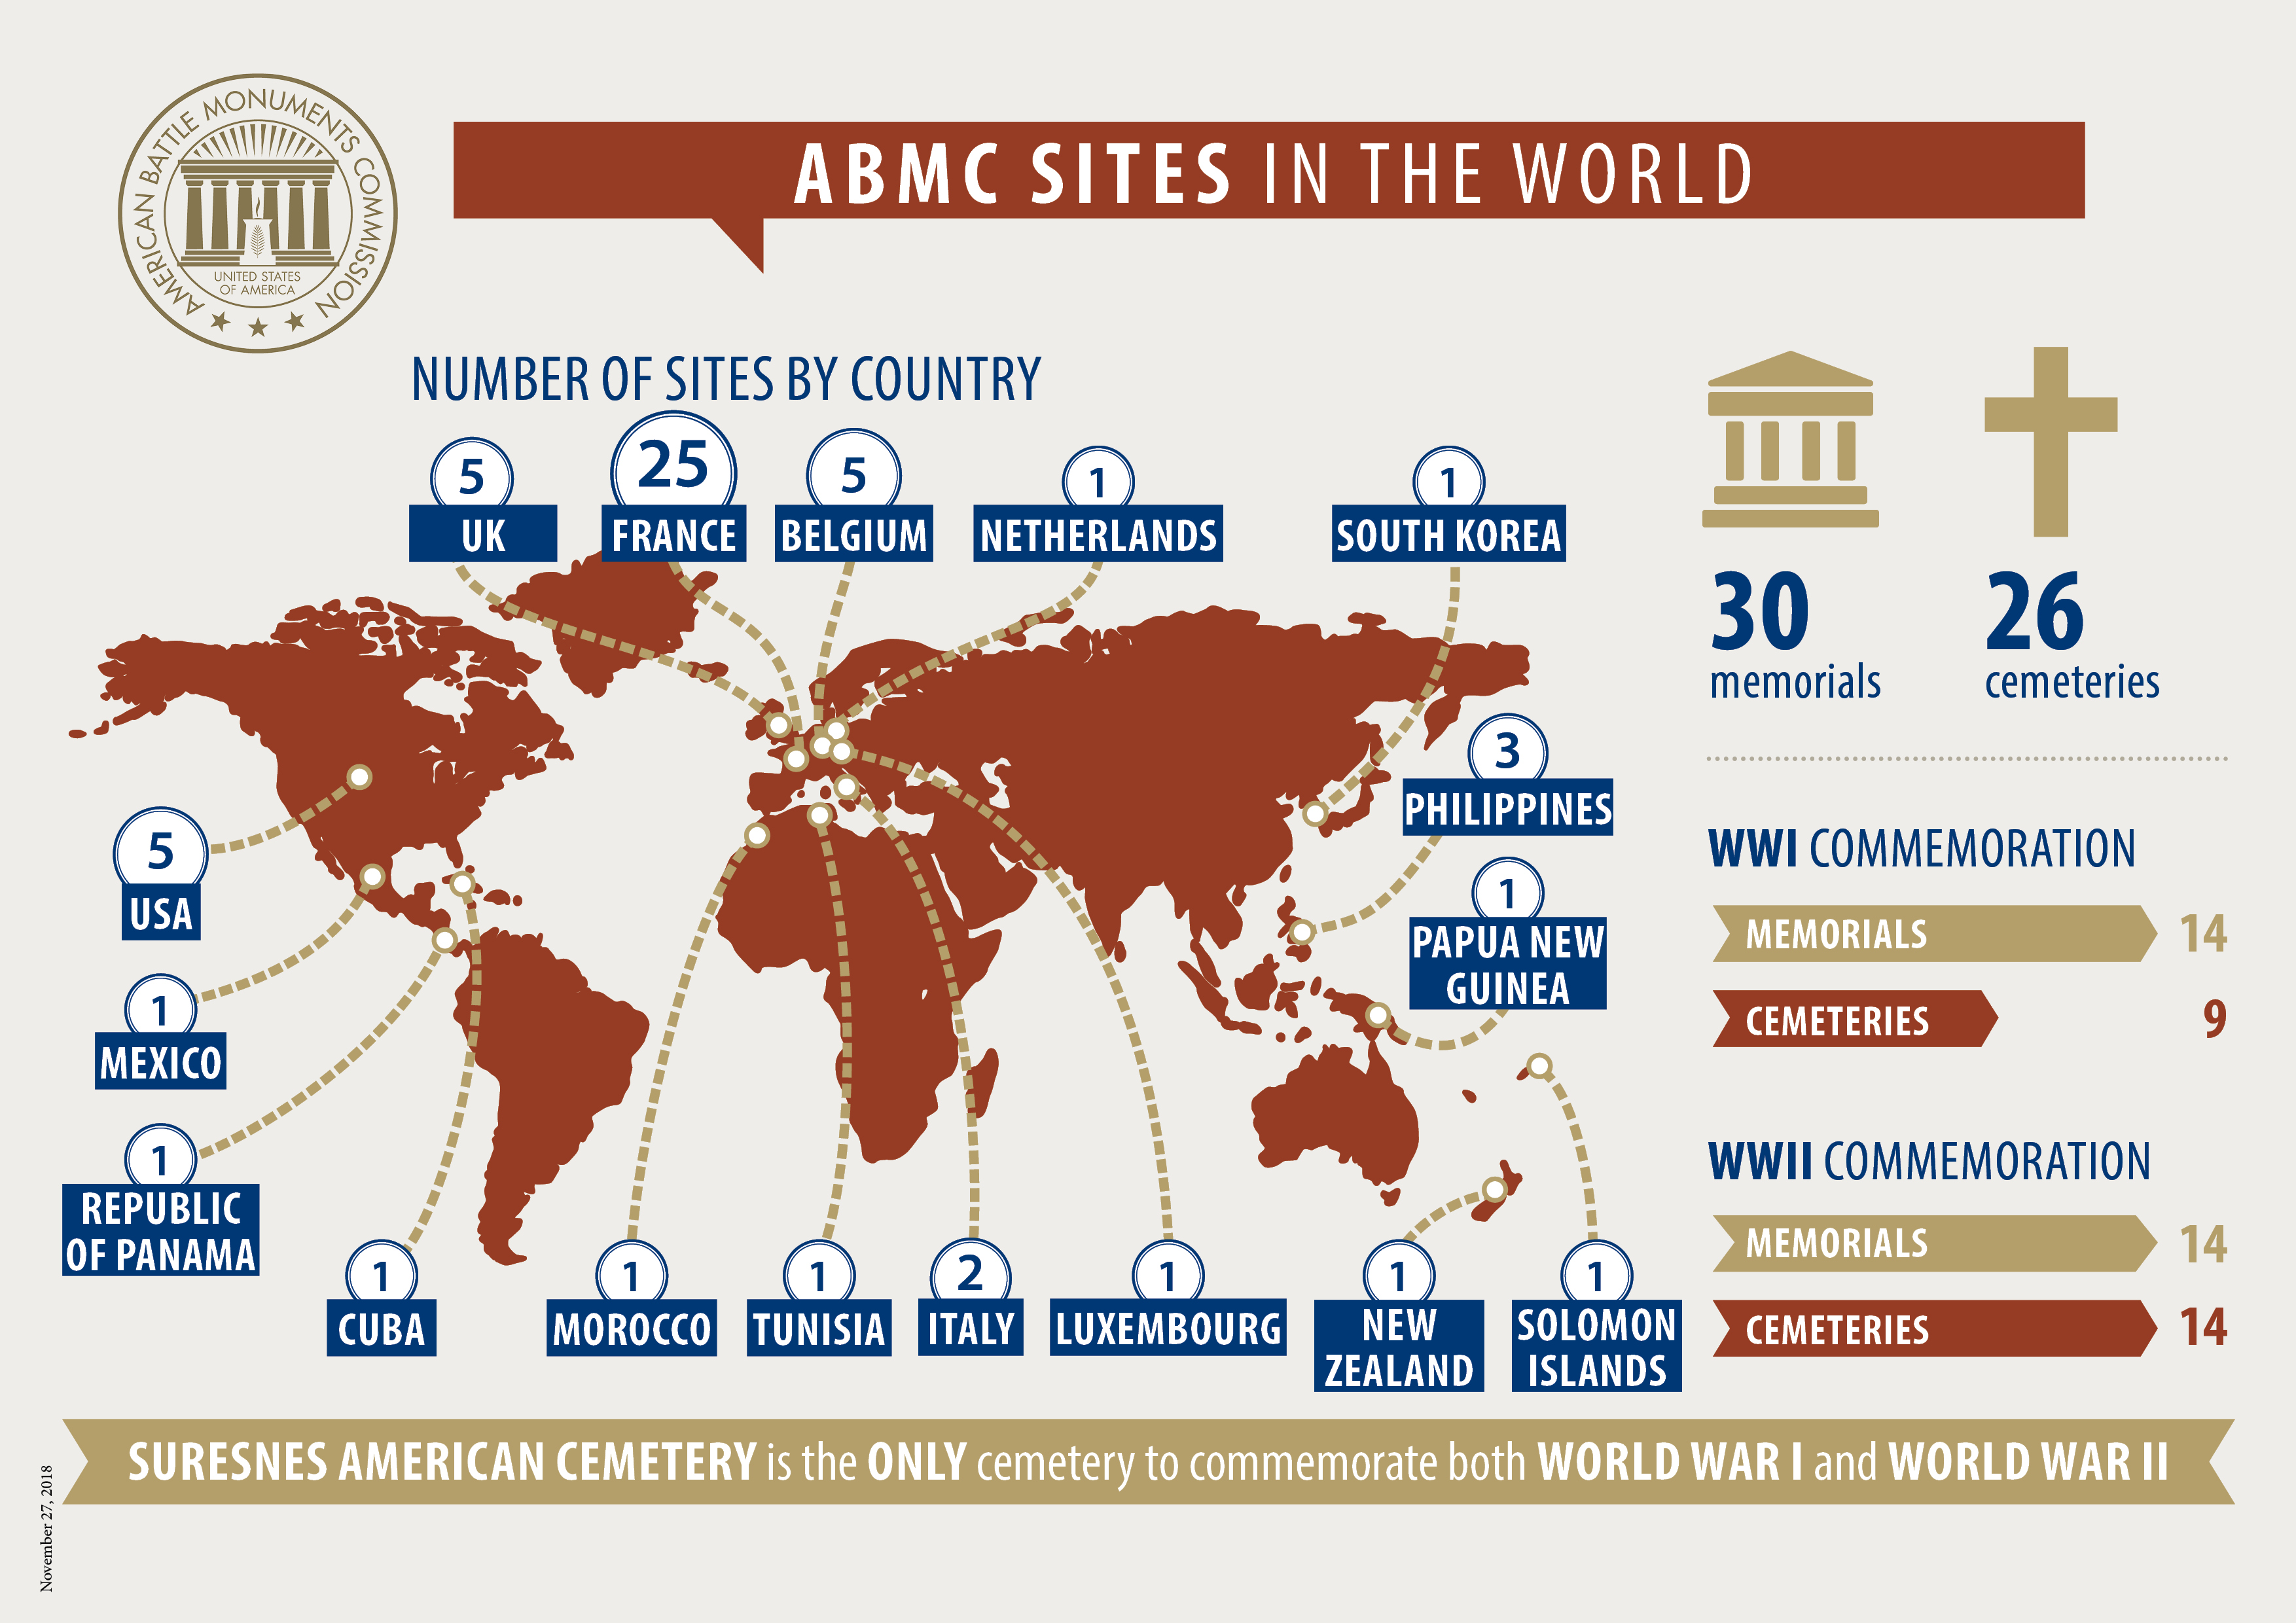 ABMC Sites in the World